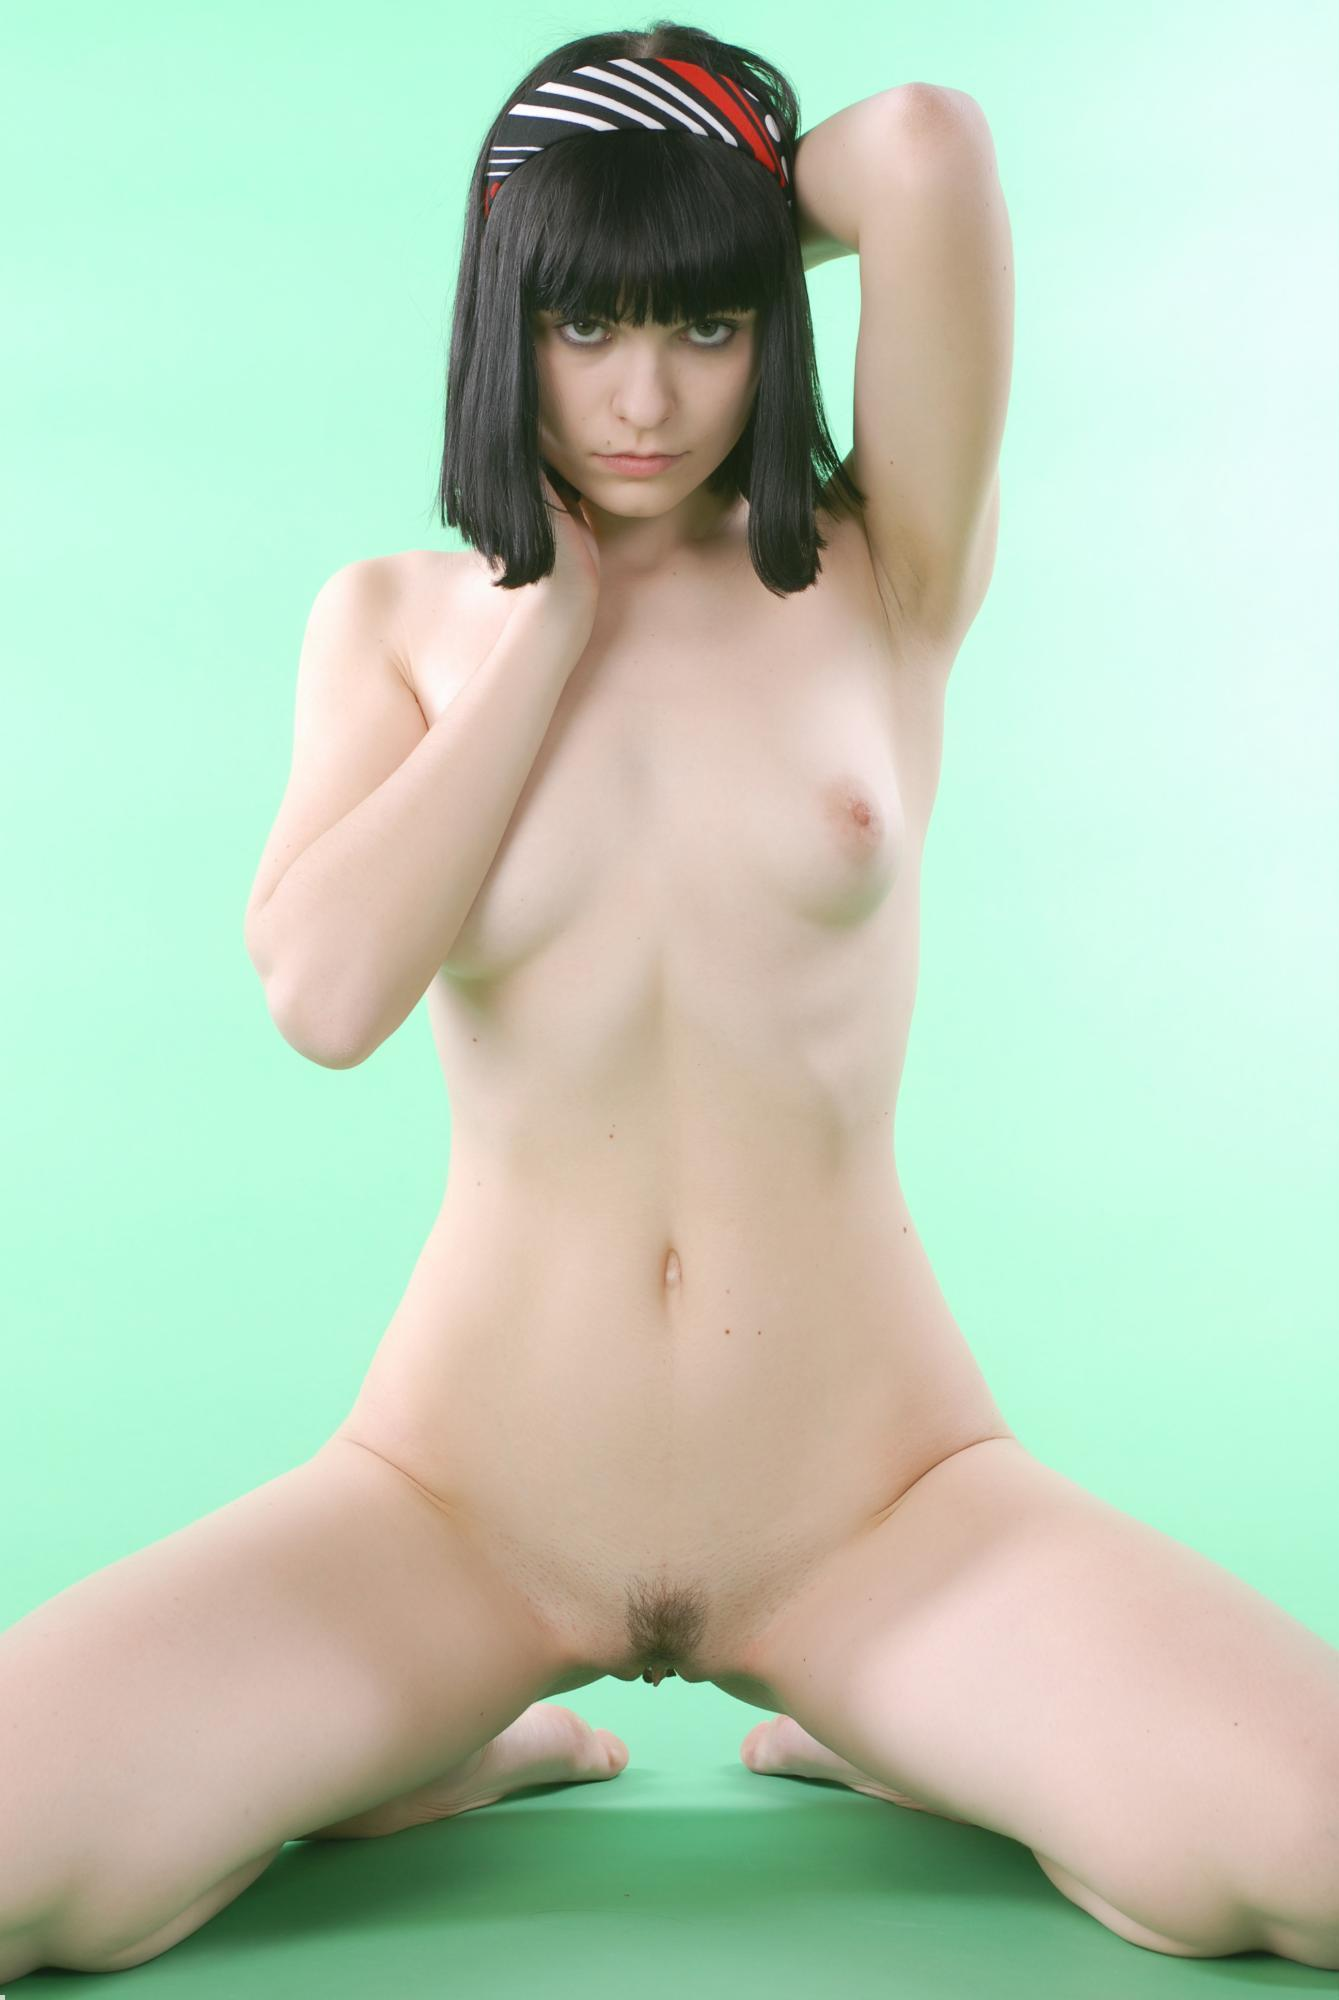 Hairy pussy looks like queen cleopatra and poses nude with tiny bosoms